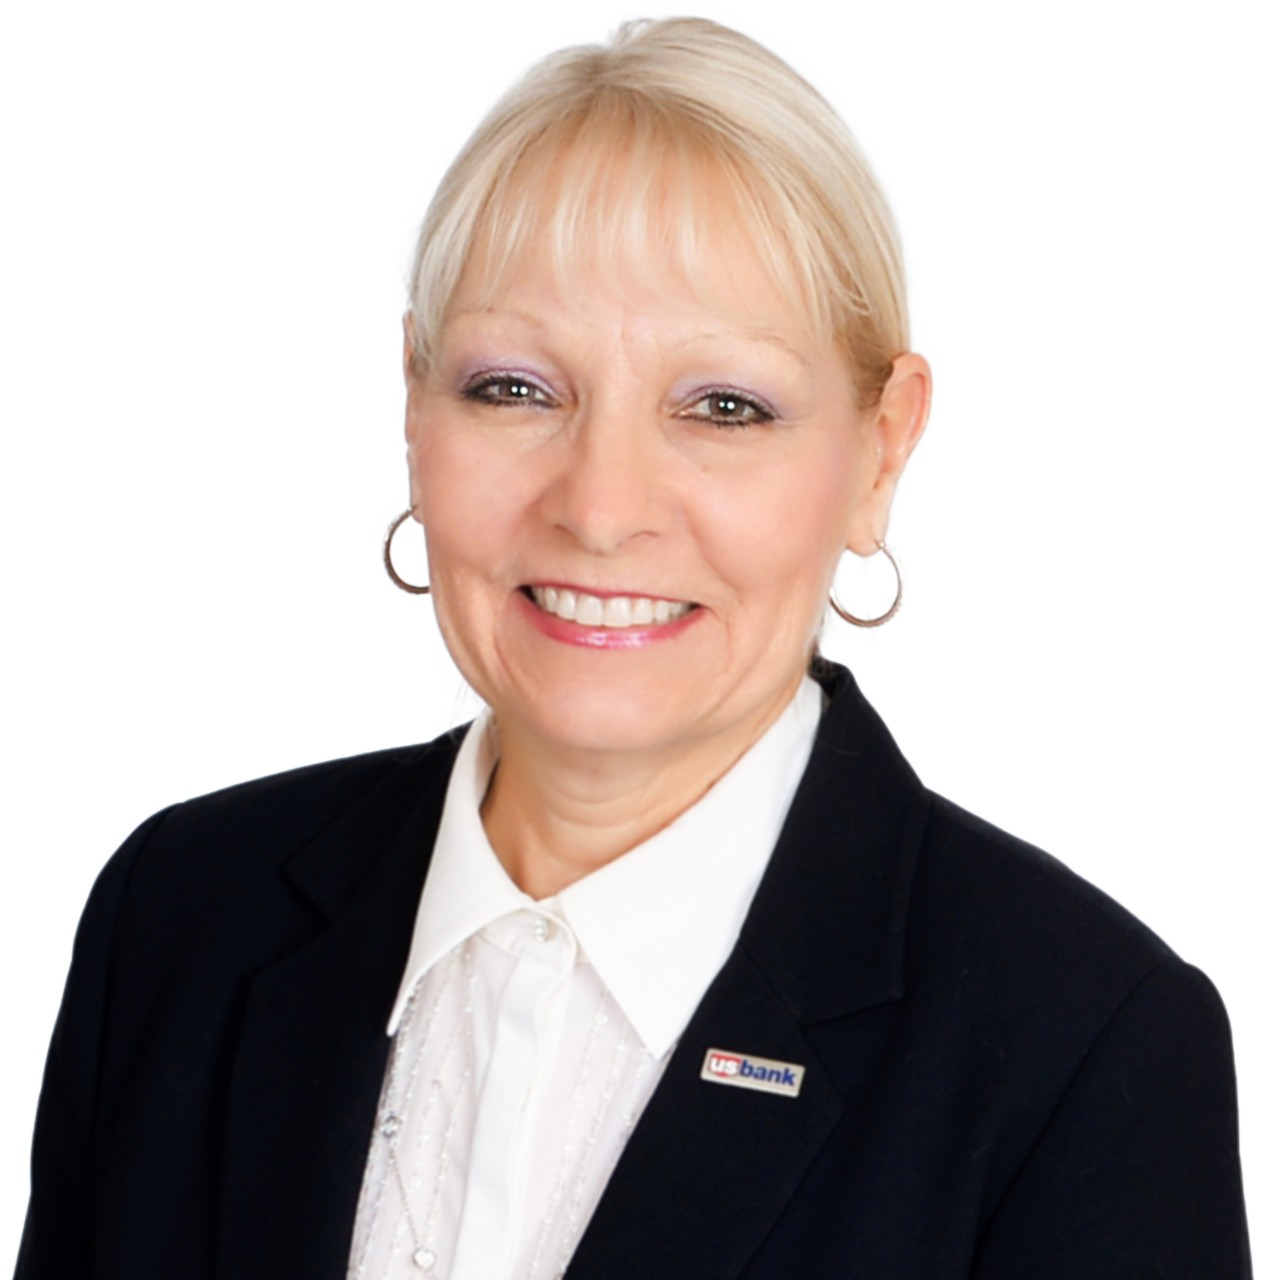 Cathy LaLuzerne | PCG Trust Relationship Mgr | Milwaukee, WI | U.S. Bancorp Wealth Management